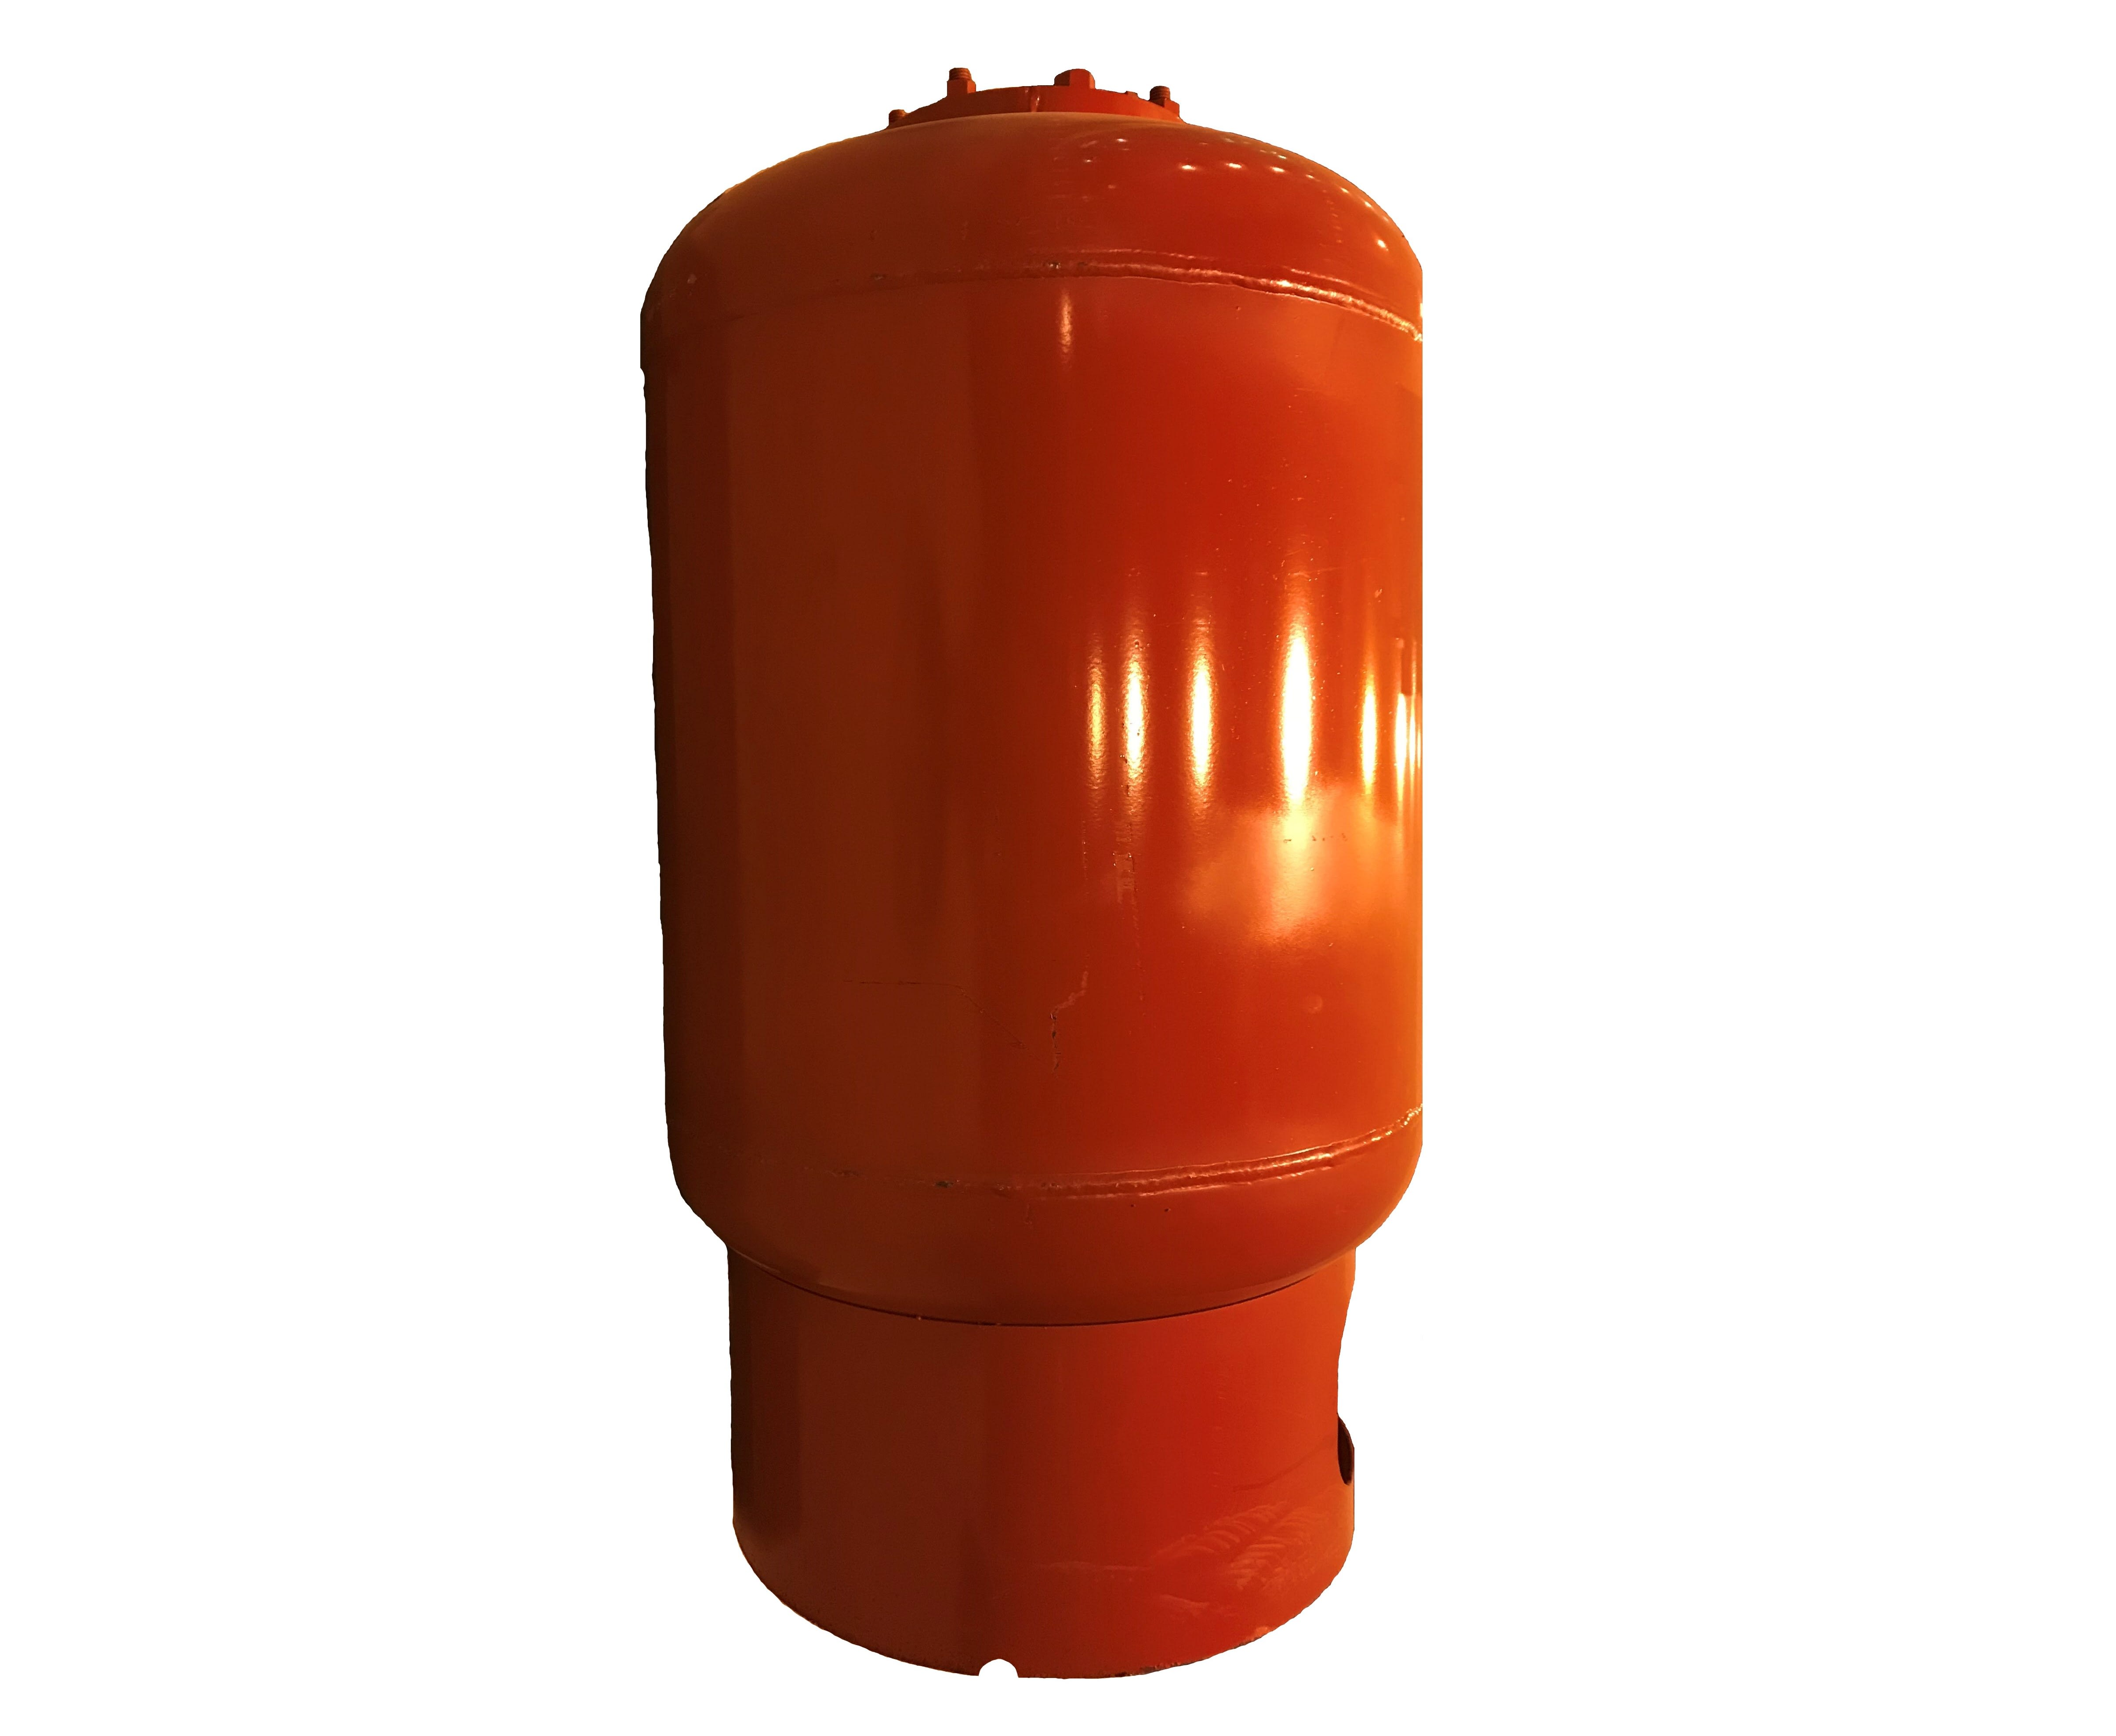 Expansion Tank, Steelcraft Inc., Provider of Steel Products and OEM Manufacturing in Ontario